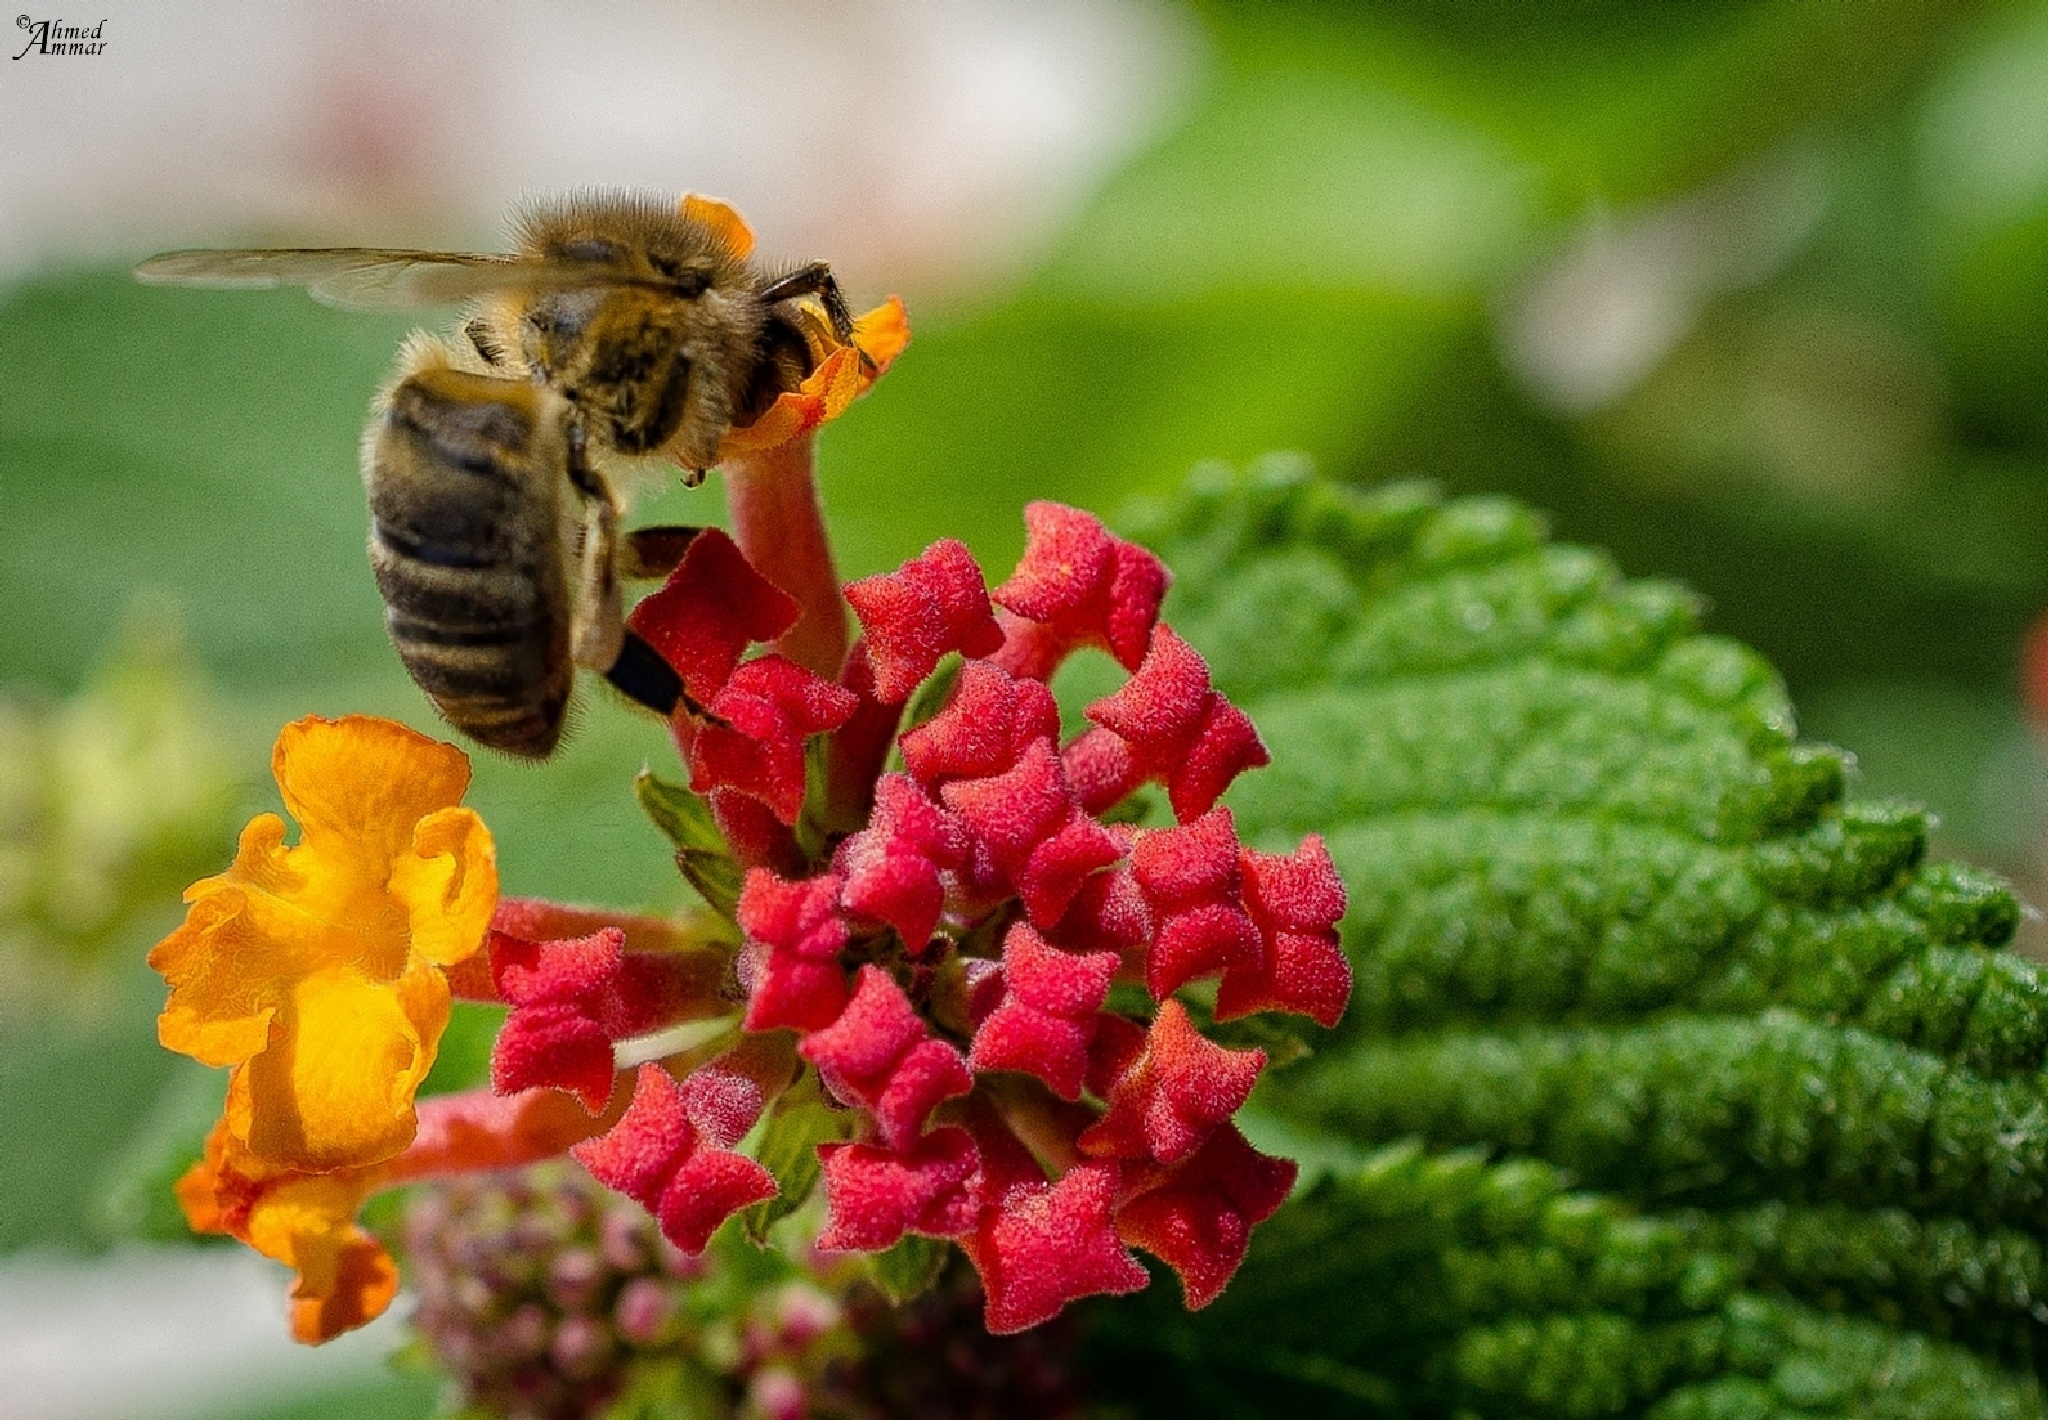 Bee by Ahmed Ammar Photographer